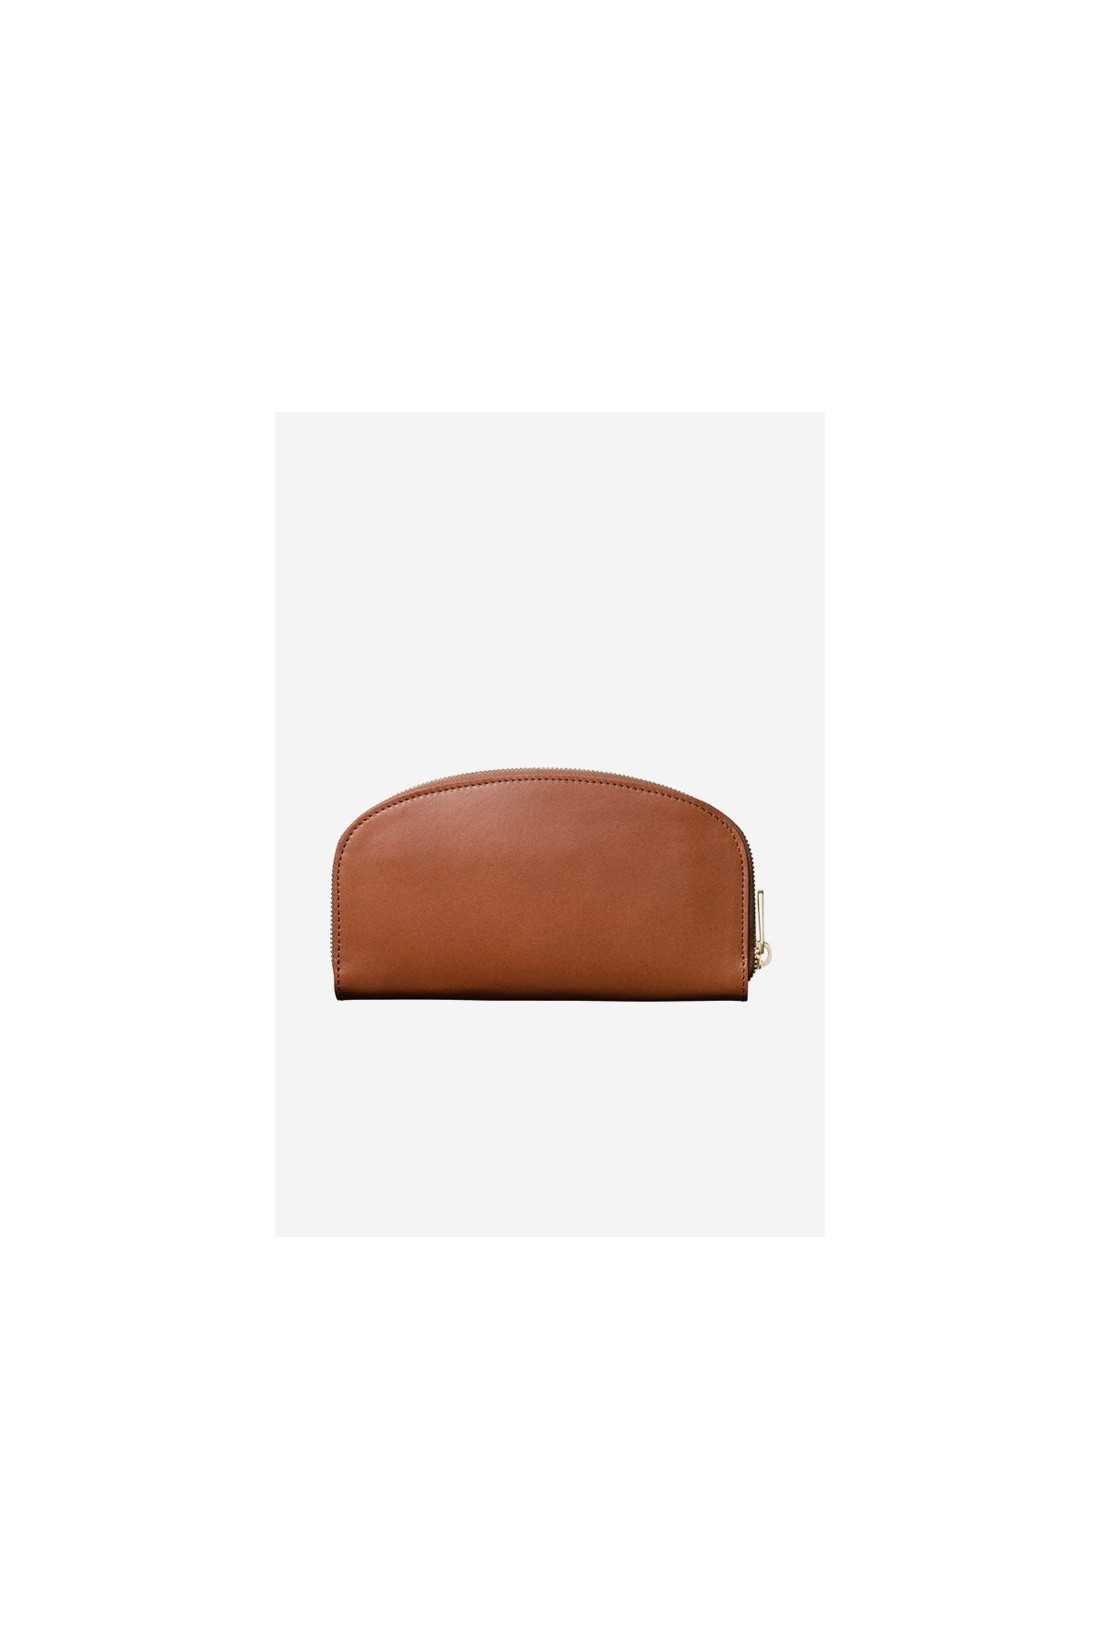 A.P.C. FOR WOMAN / Portefeuille demi-lune Noisette